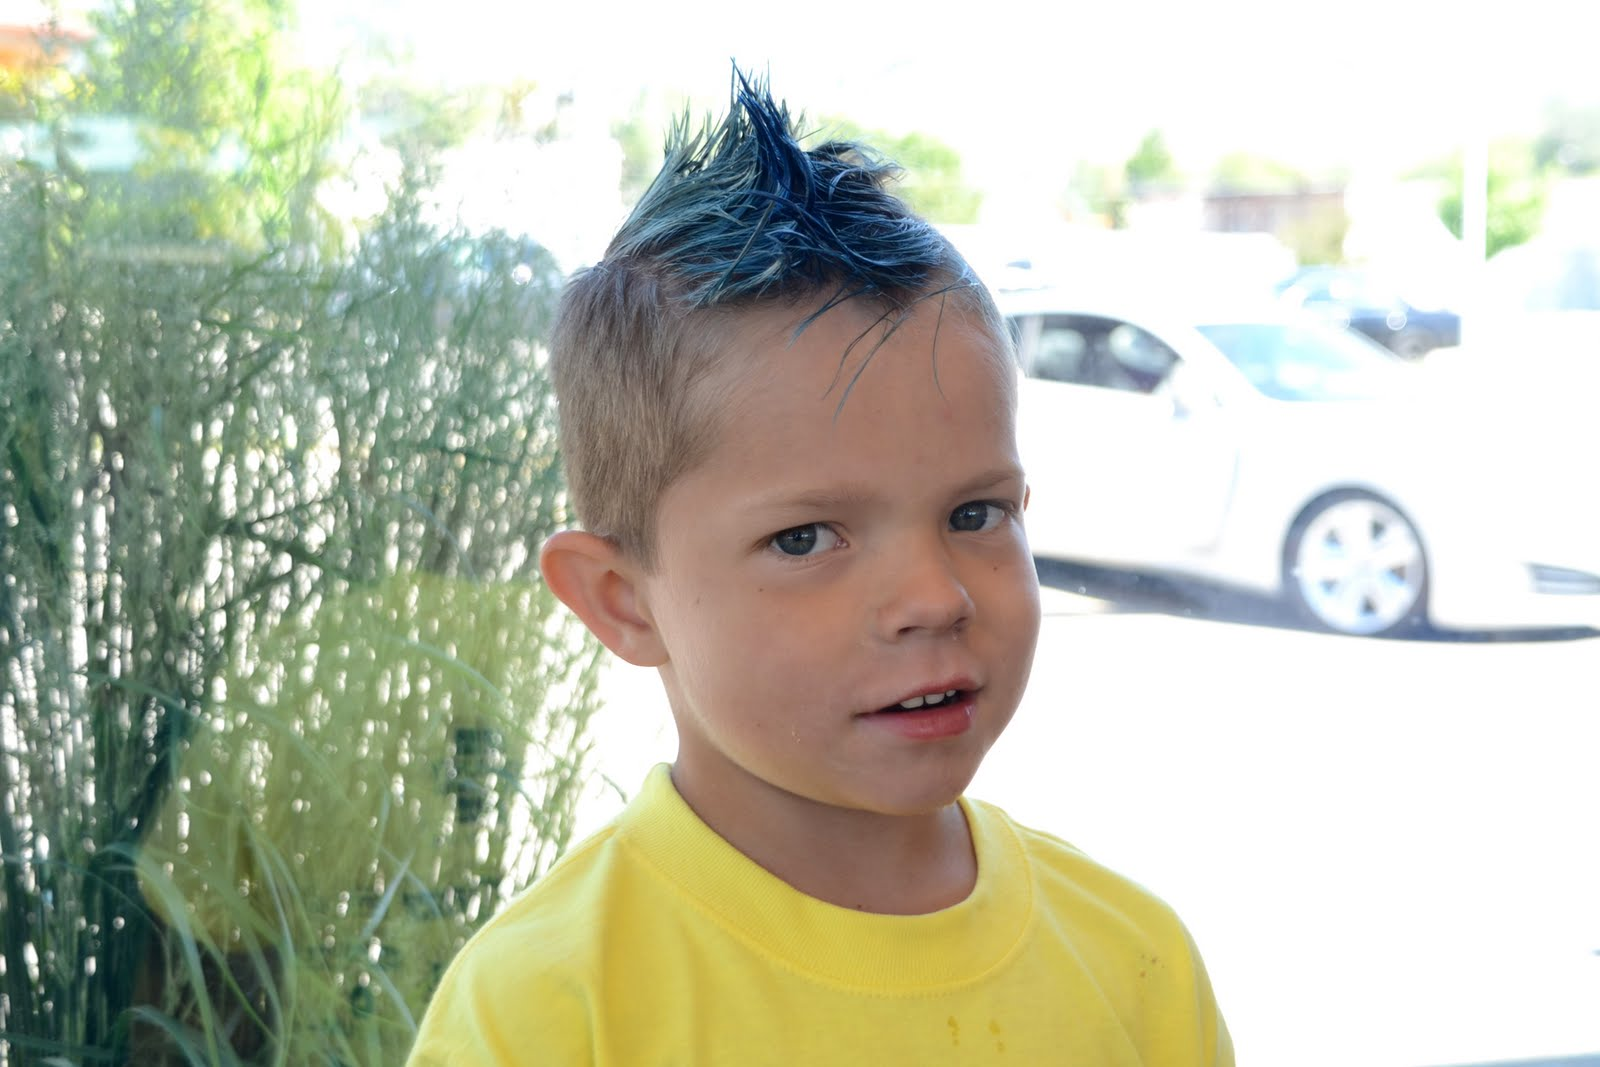 Boy Haircuts For Summer : Cohesive pieces you capture summertime